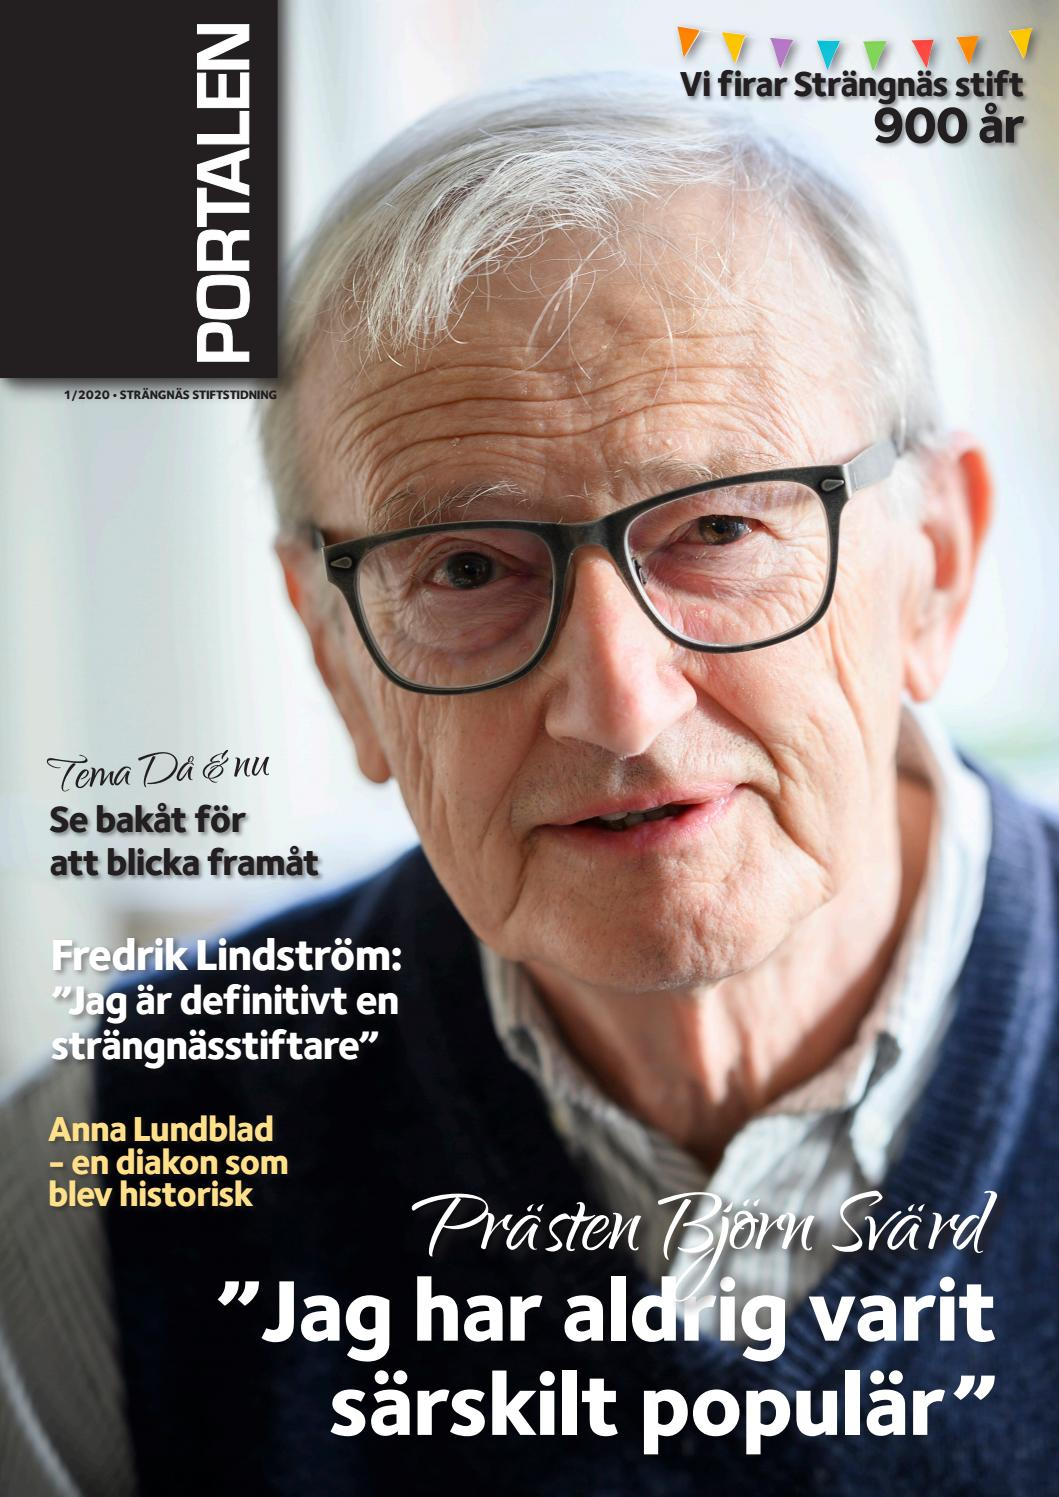 Portalen nr 4 2019 by Strngns stift - issuu